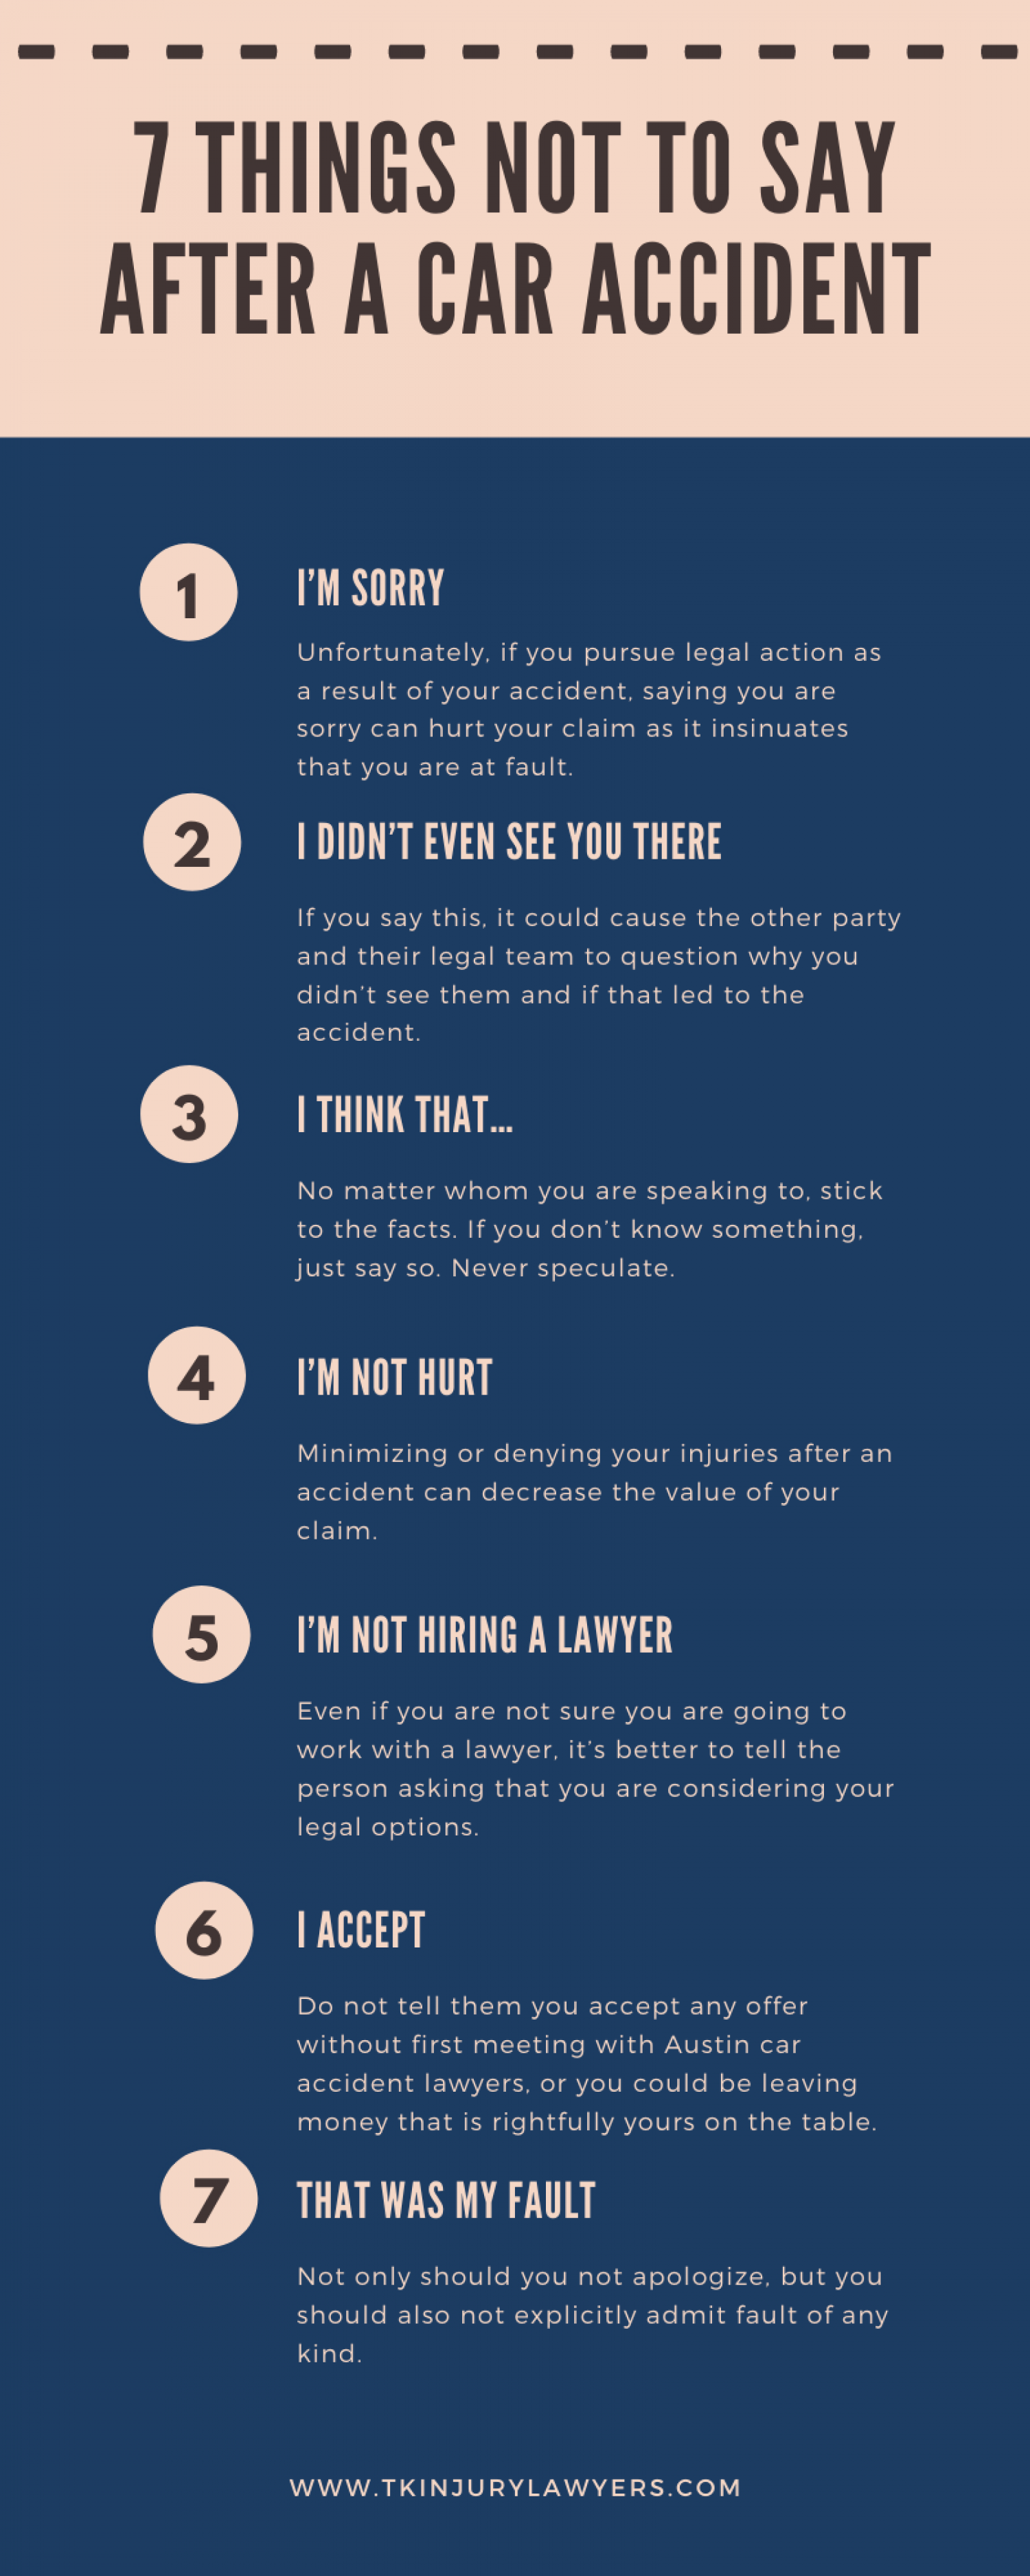 7 Things Not to Say After a Car Accident Infographic